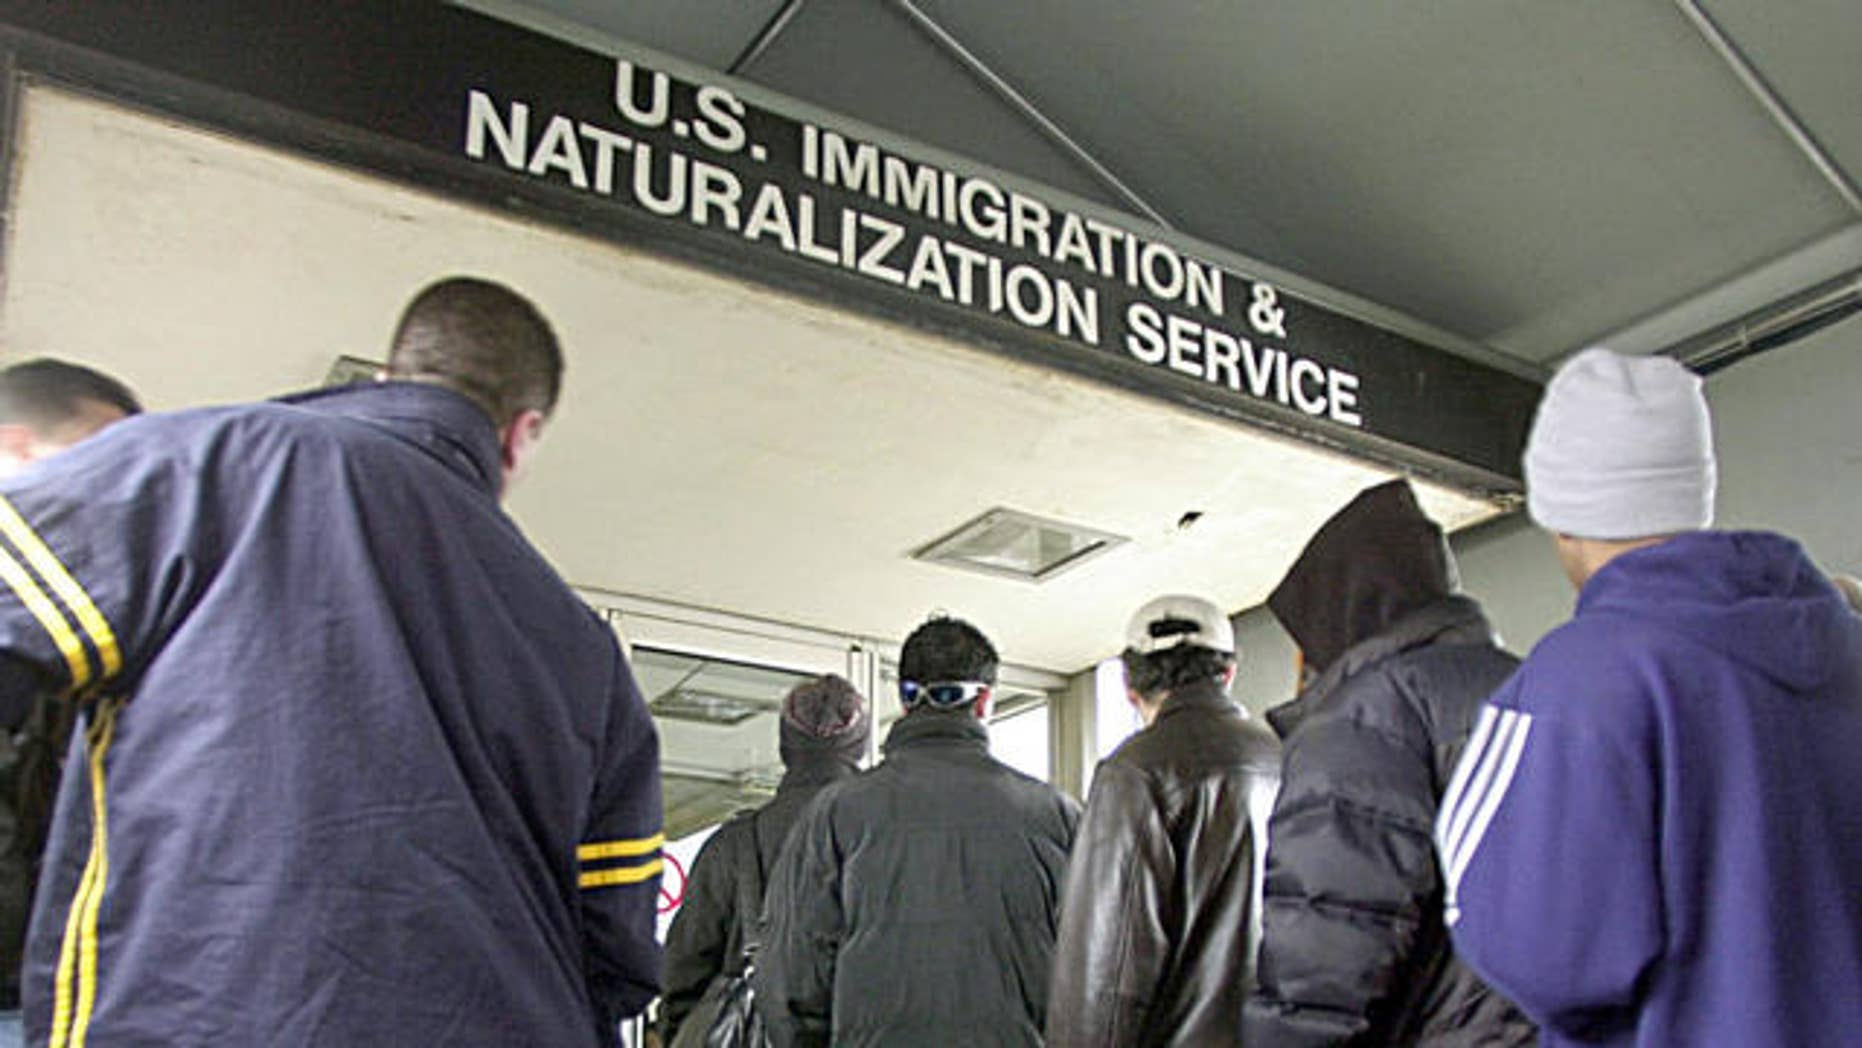 Immigrants line up outside an immigration office in Michigan. The state's governor, Rick Snyder, Republican, says foreign nationals have been an asset to the state and that Michigan's ailing economy needs to attract more immigrants.